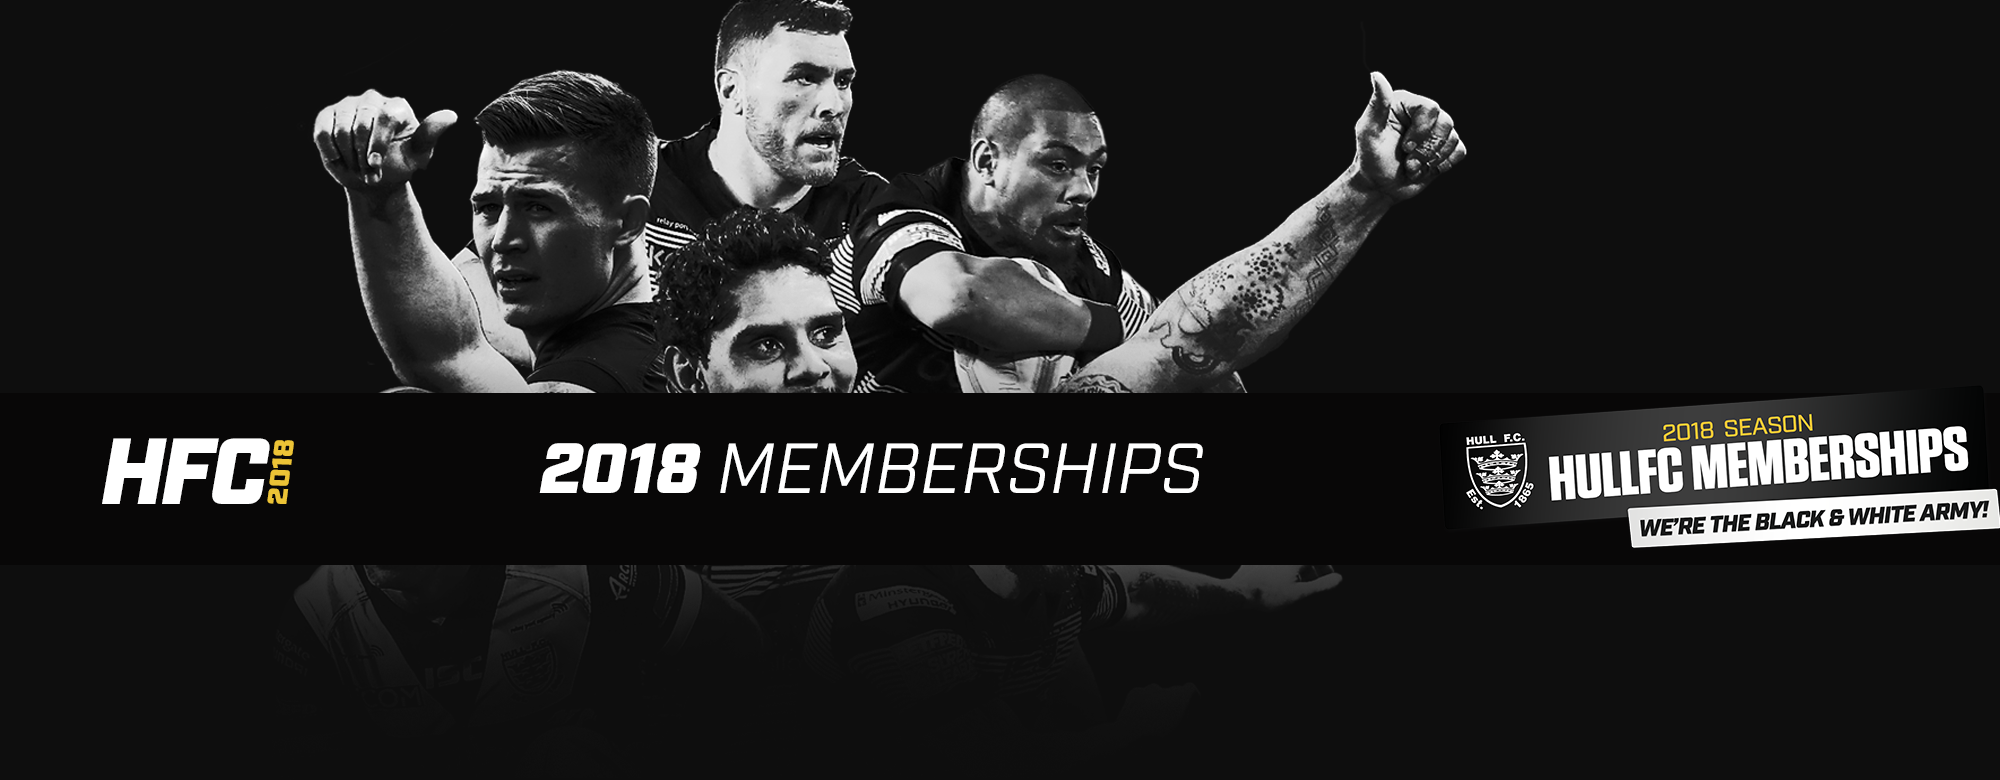 Membership Collection Day Next Saturday!